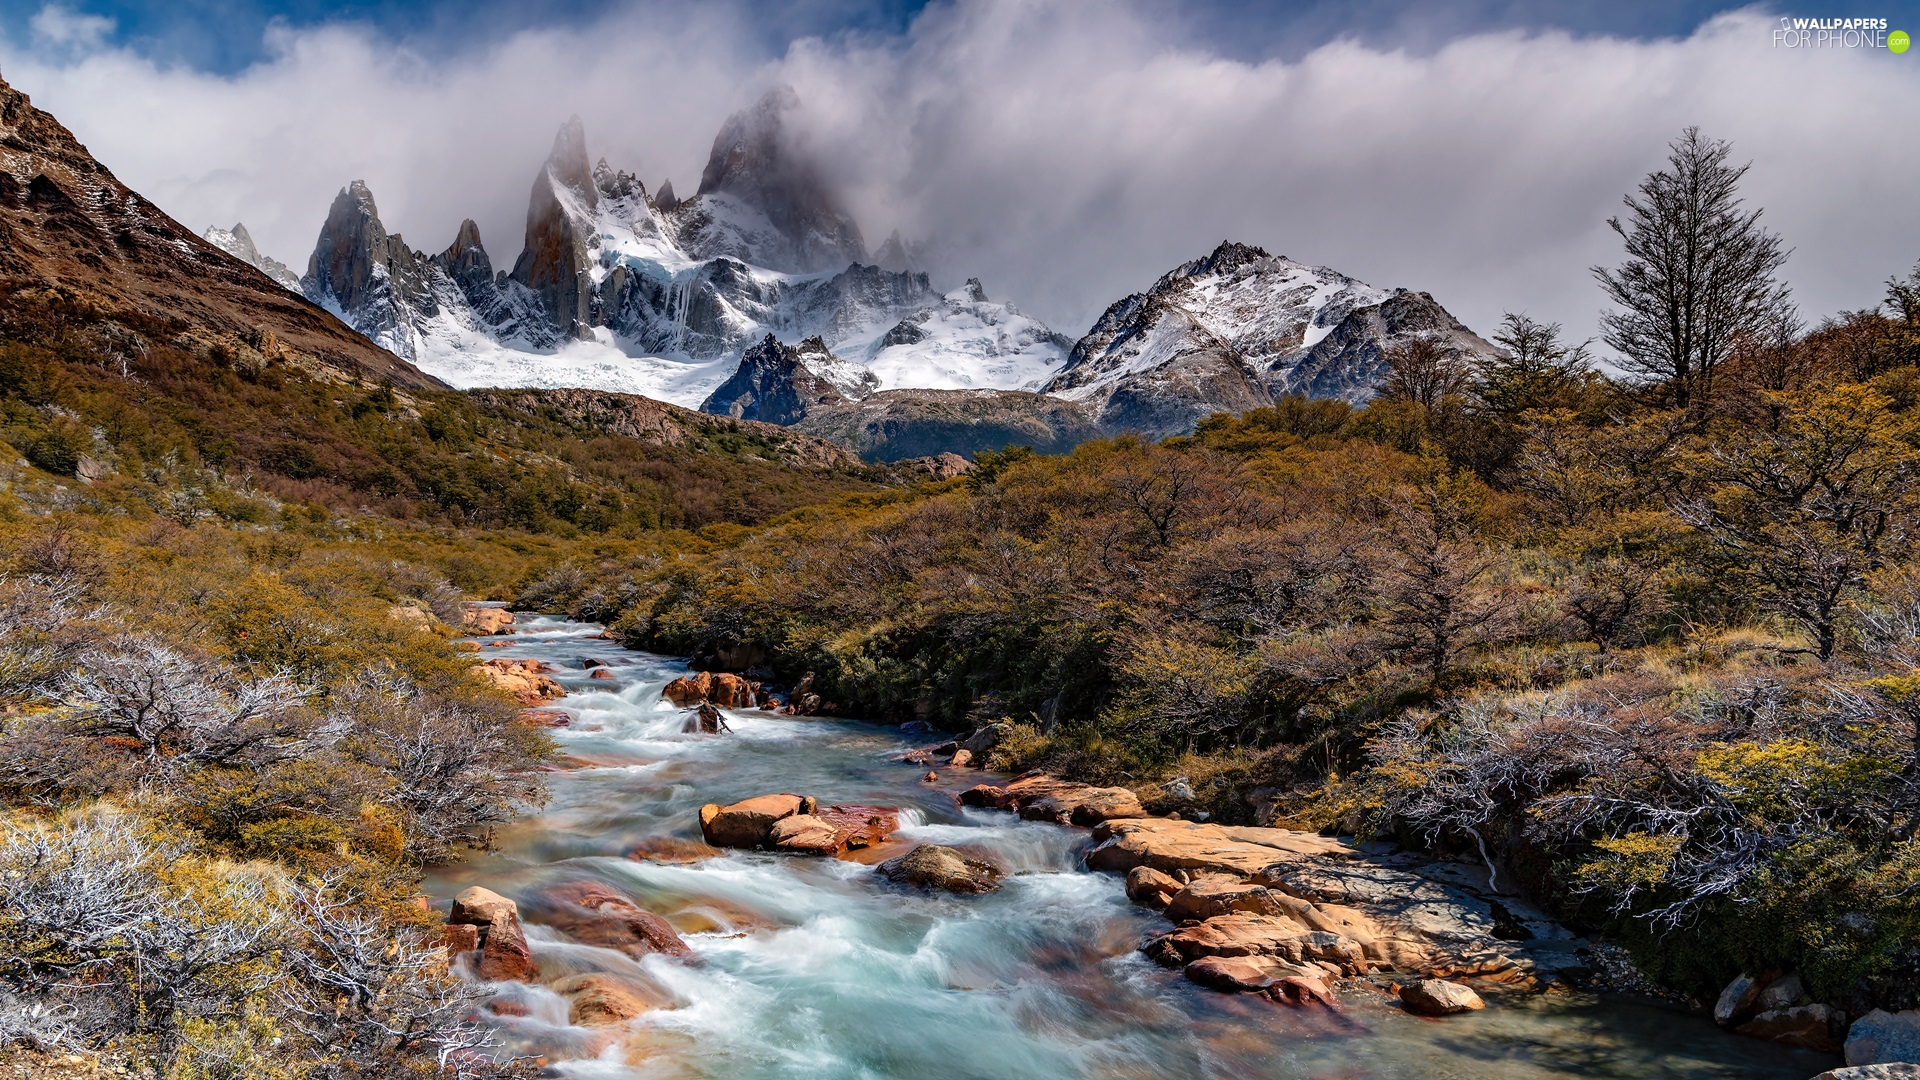 VEGETATION, Fitz Roy Mountain, Stones, Patagonia, trees, Andes Mountains, River, Argentina, clouds, viewes